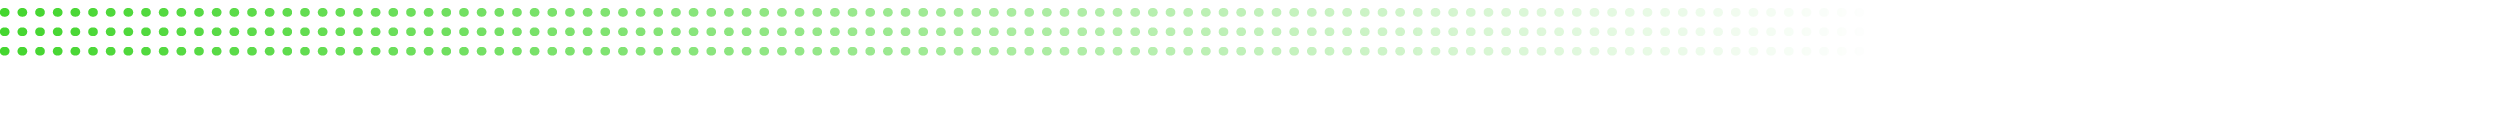 Green Dotted Border